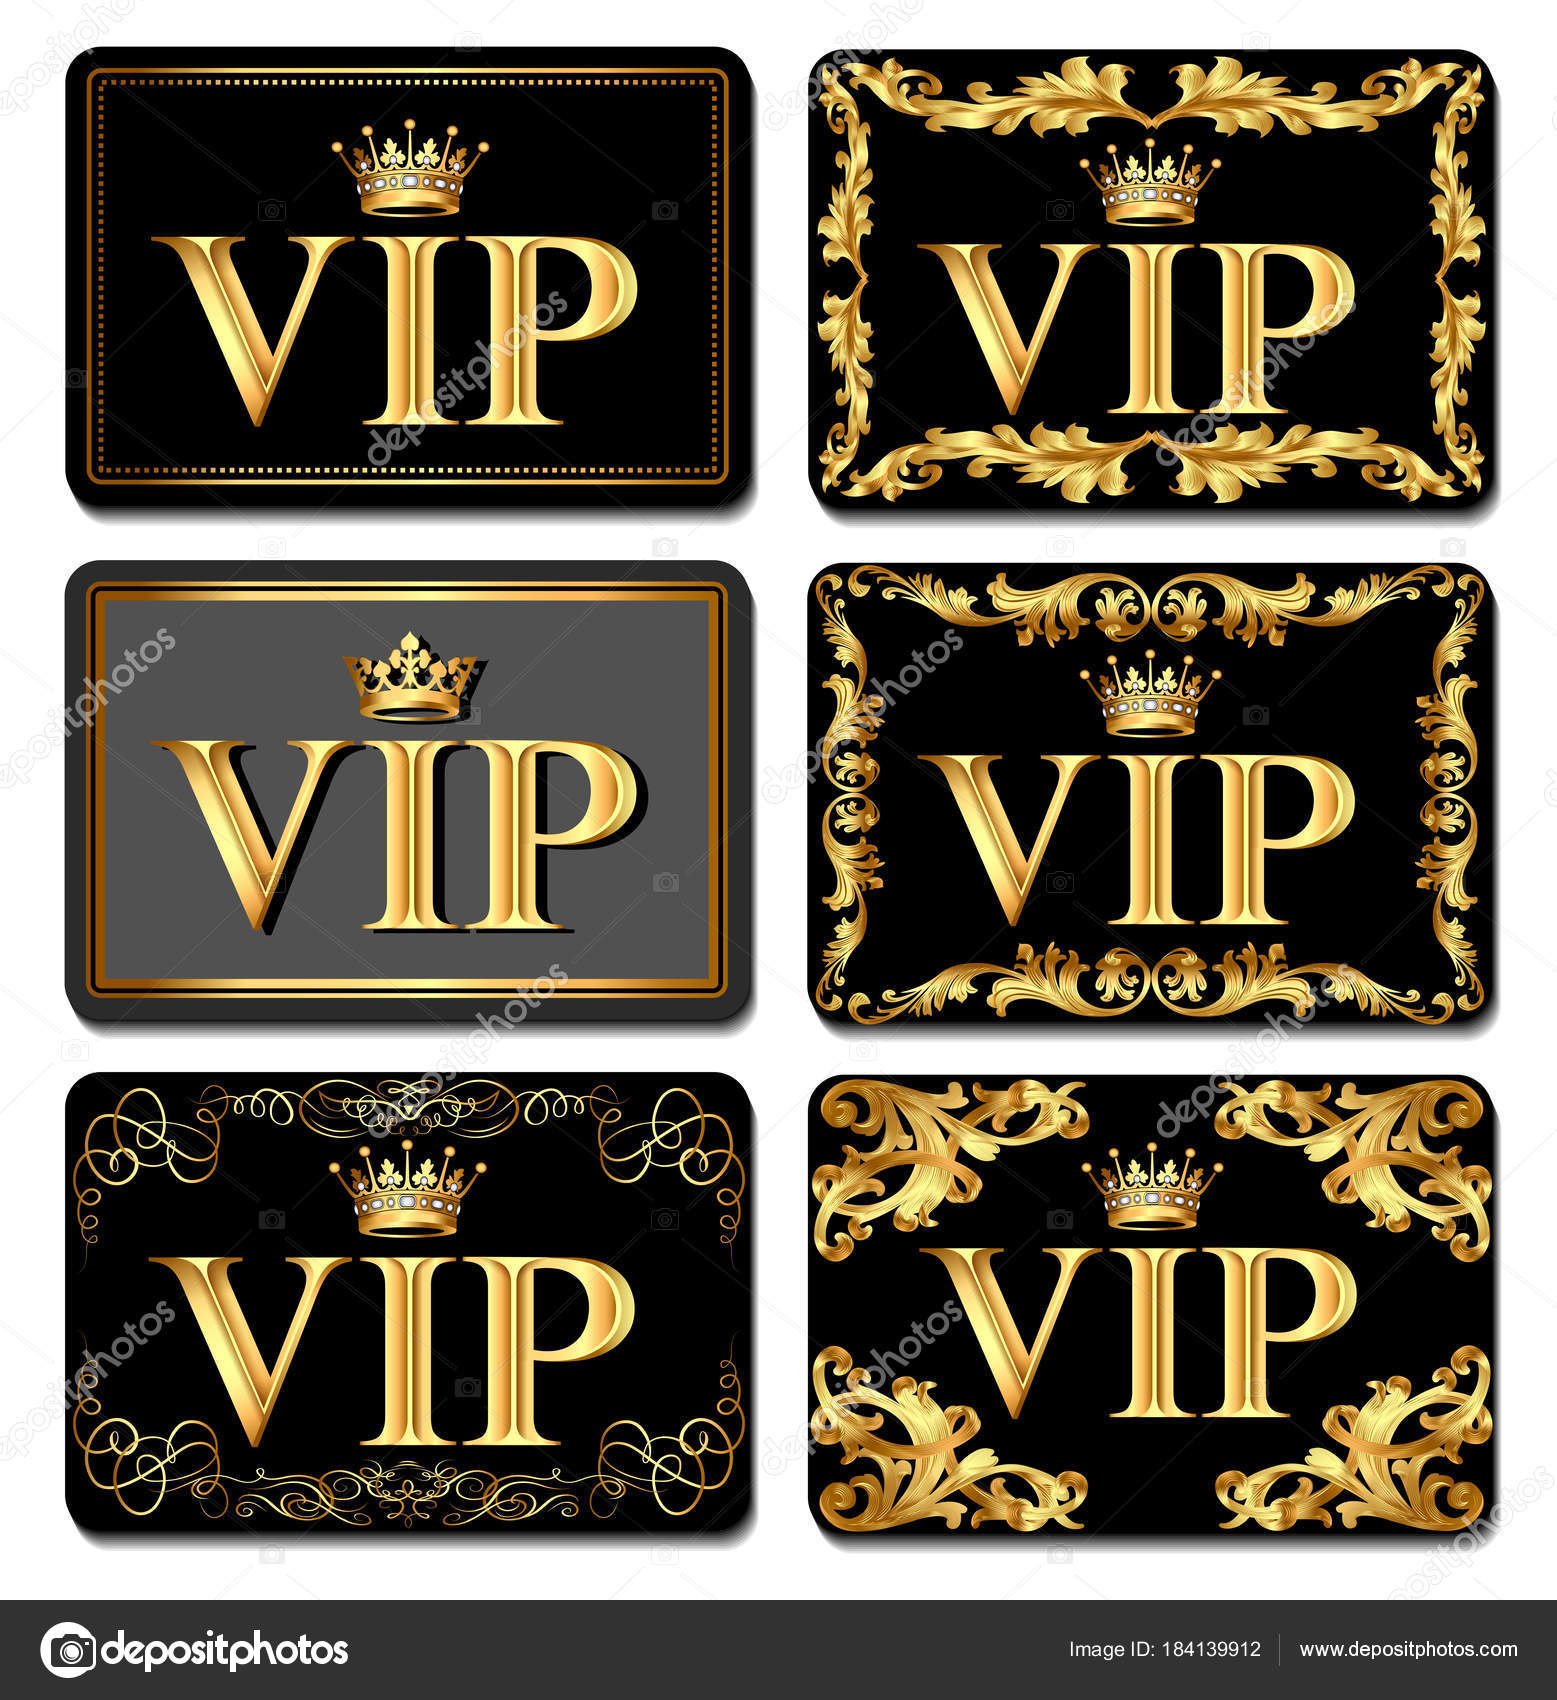 Illustration on the design of VIP business cards gold with crown ...